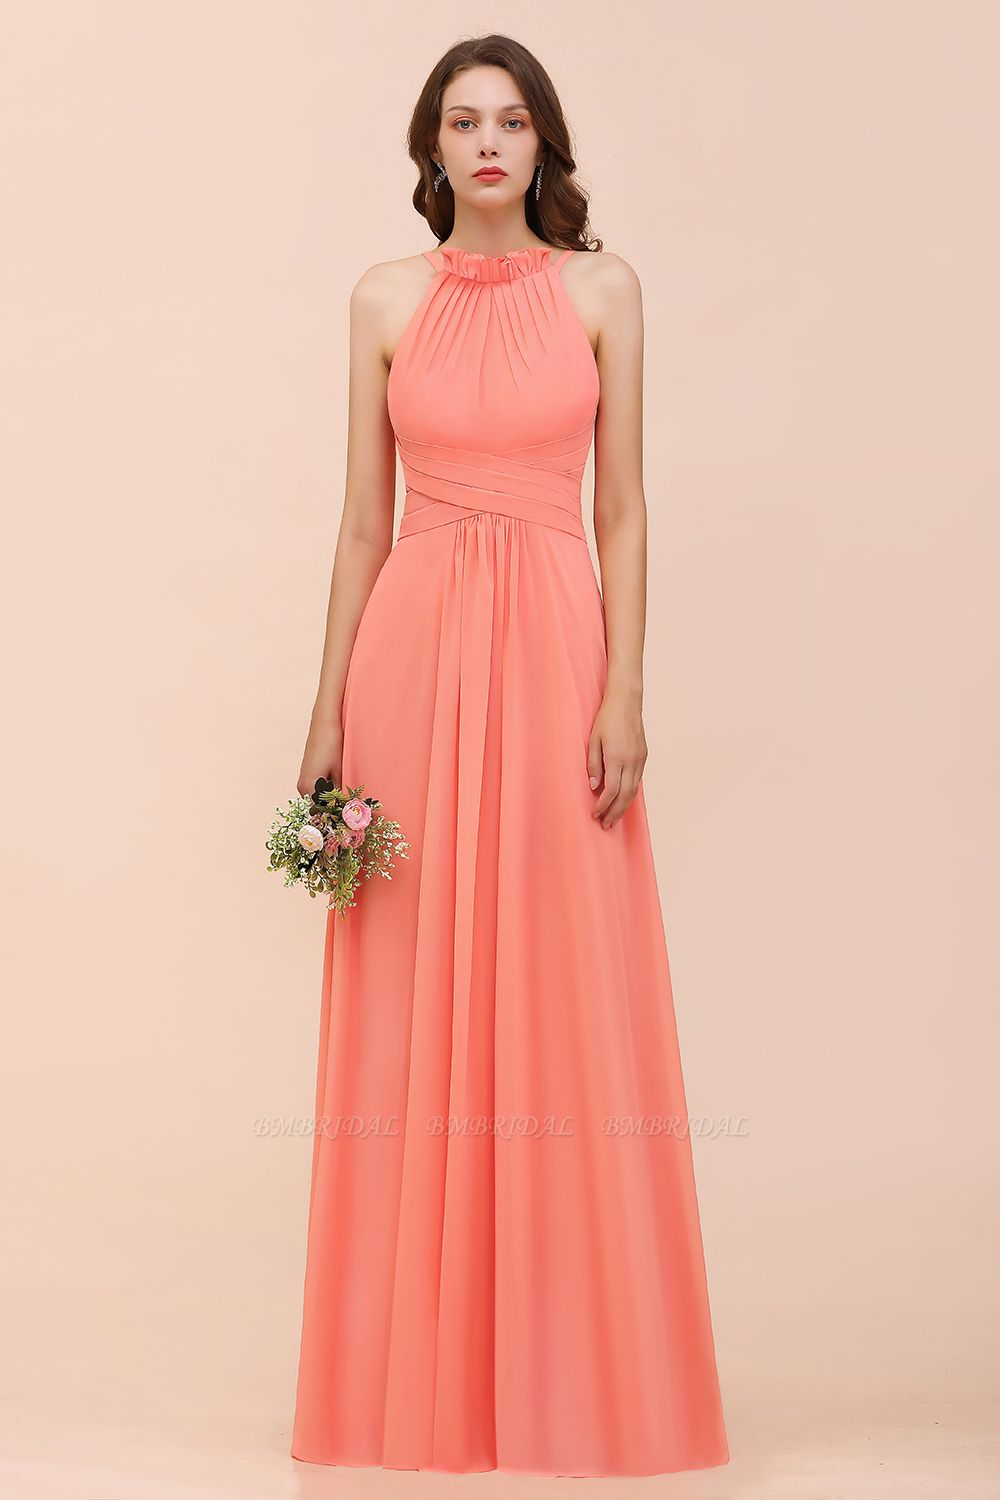 BMbridal Modest Halter Ruffle Coral Chiffon Affordable Bridesmaid Dress Online